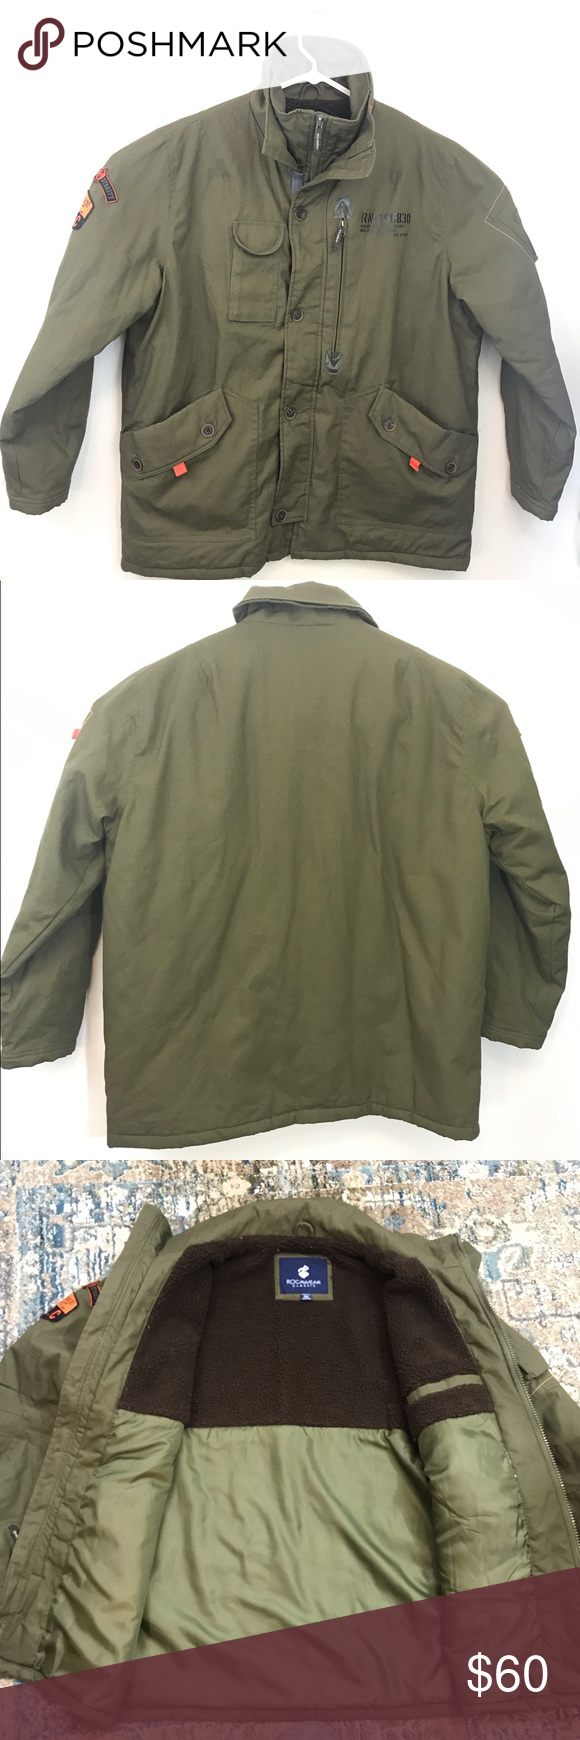 Rocawear Classic Men S Jacket Size 3xl Army Green Rocawear Classic Men S Jacket Size 3xl Army Green Excellent Condition Like N Mens Jackets Army Green Rocawear [ 1740 x 580 Pixel ]